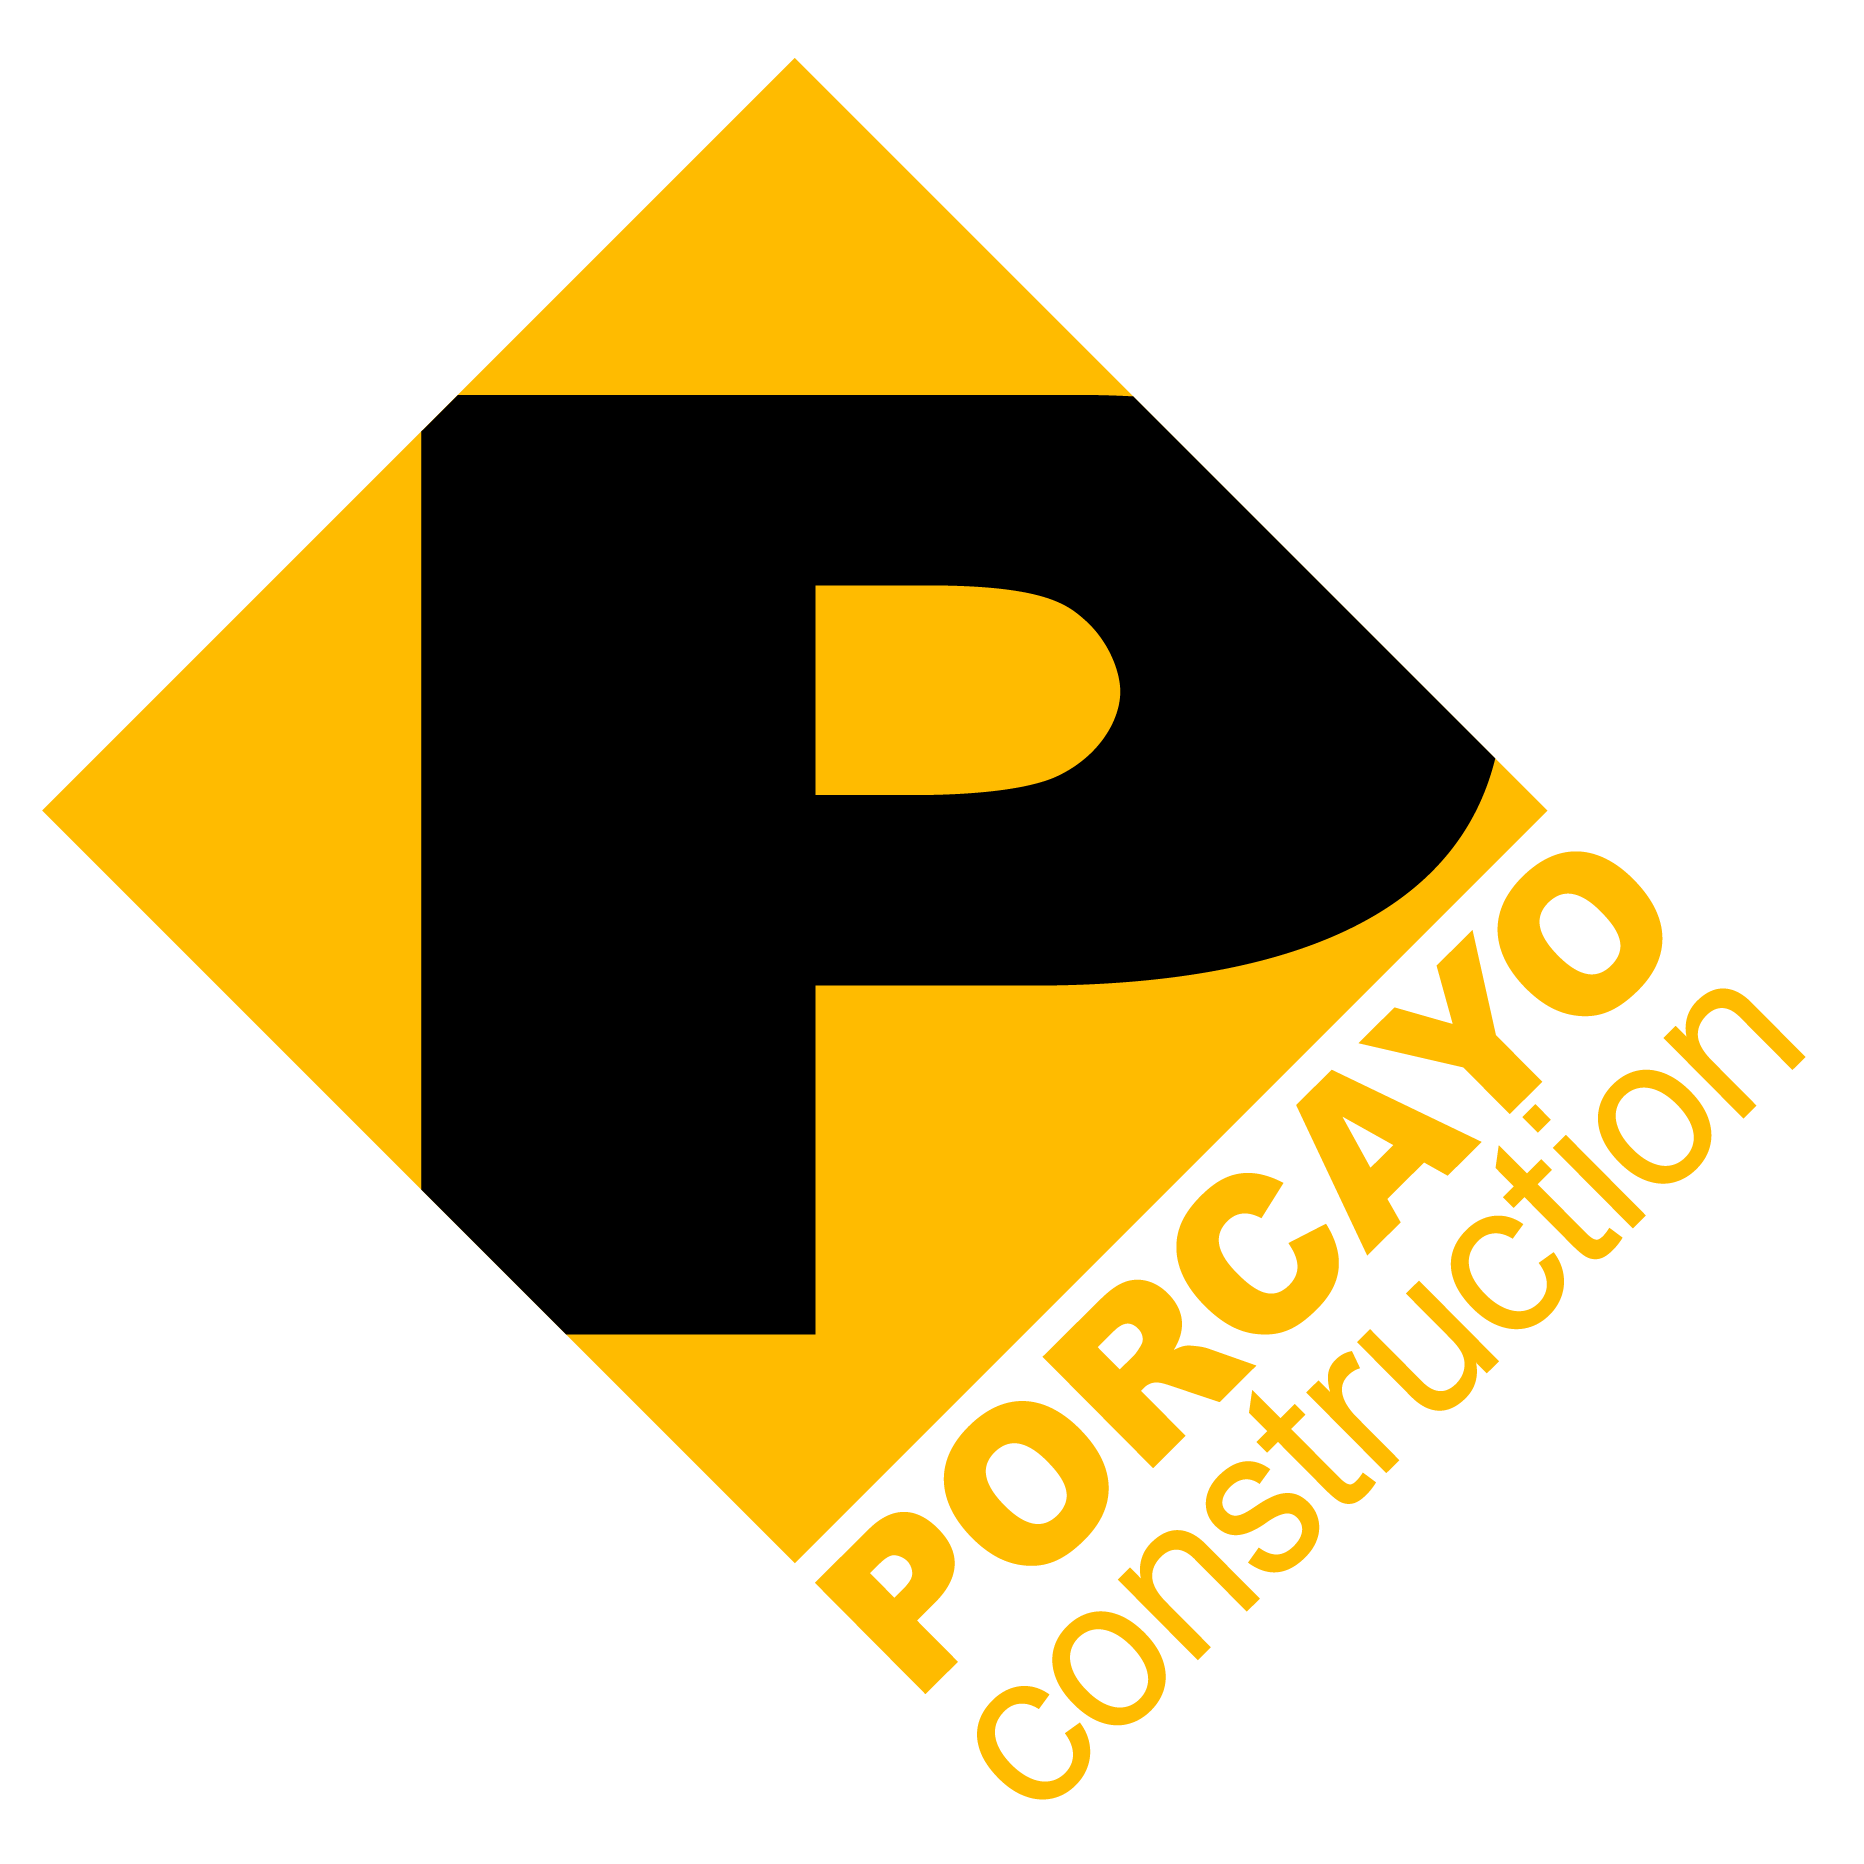 Porcayo Construction - We Are More Than Builders.